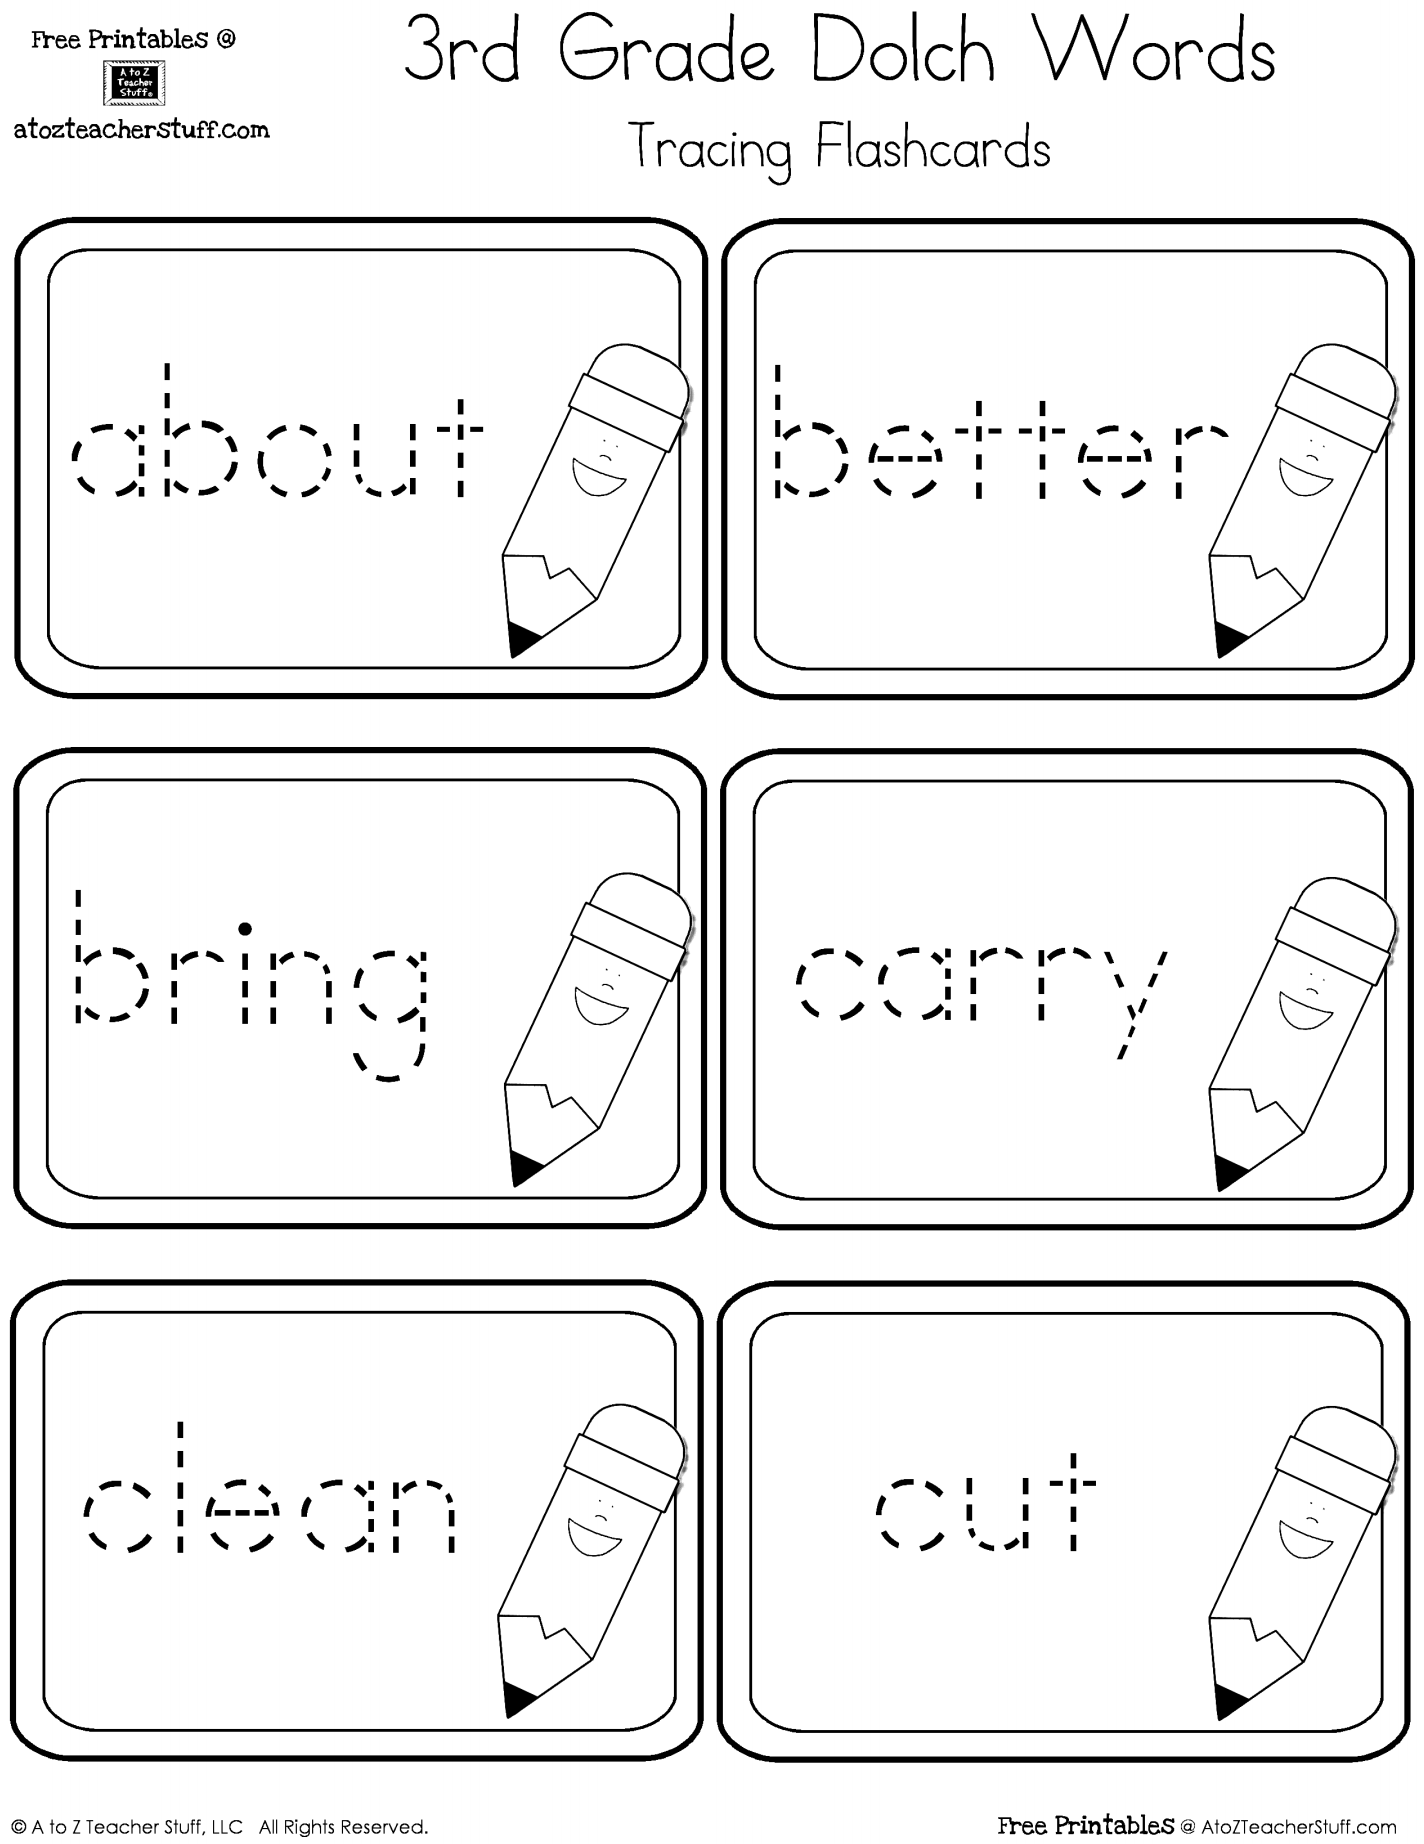 Uncategorized Tracing Names Worksheet third grade dolch sight words tracing flashcards a to z teacher 3rd cards free printables